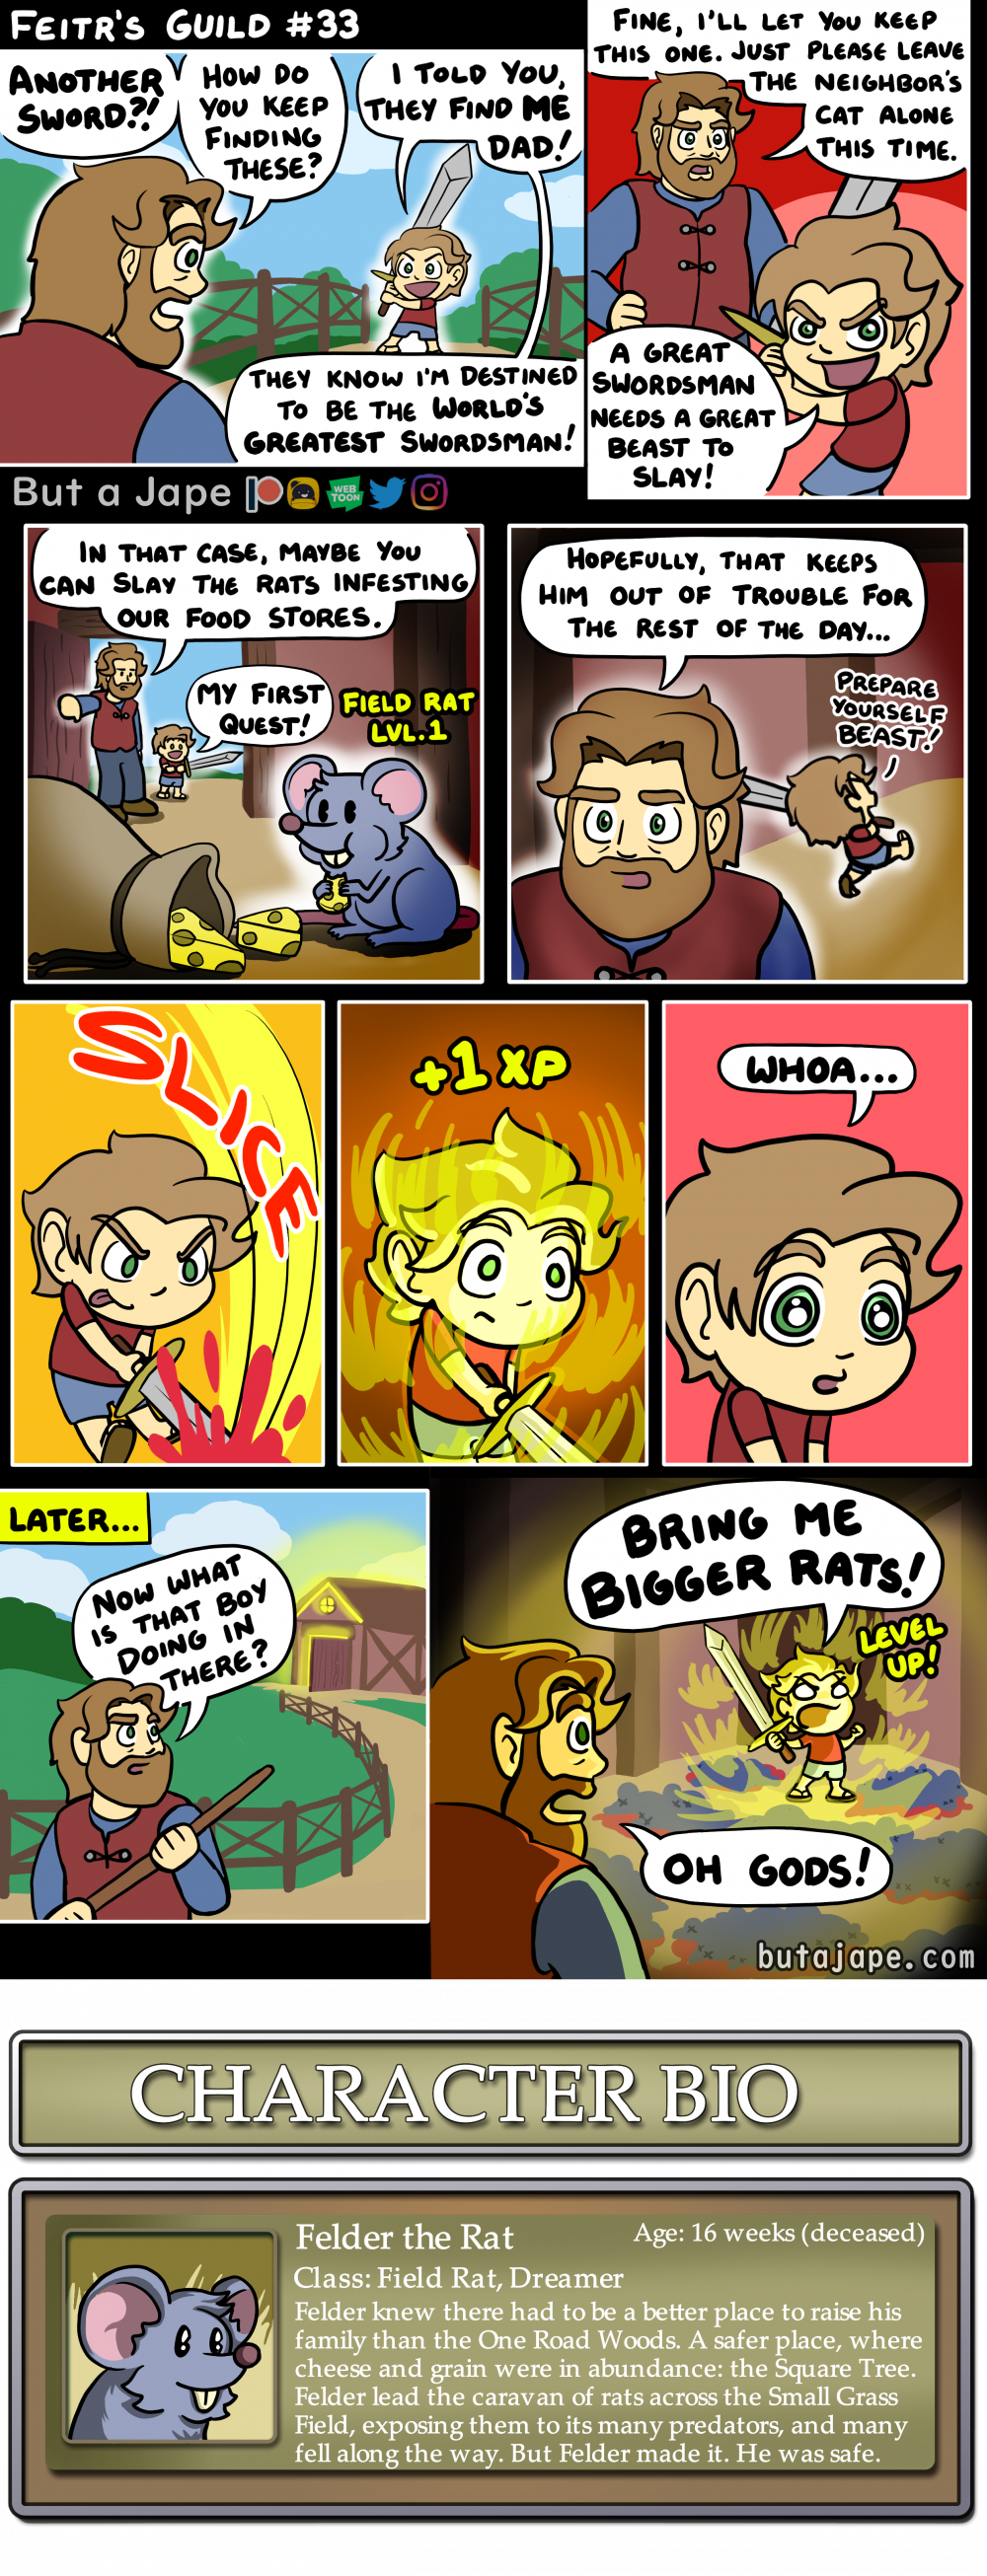 feitrs first quest comic